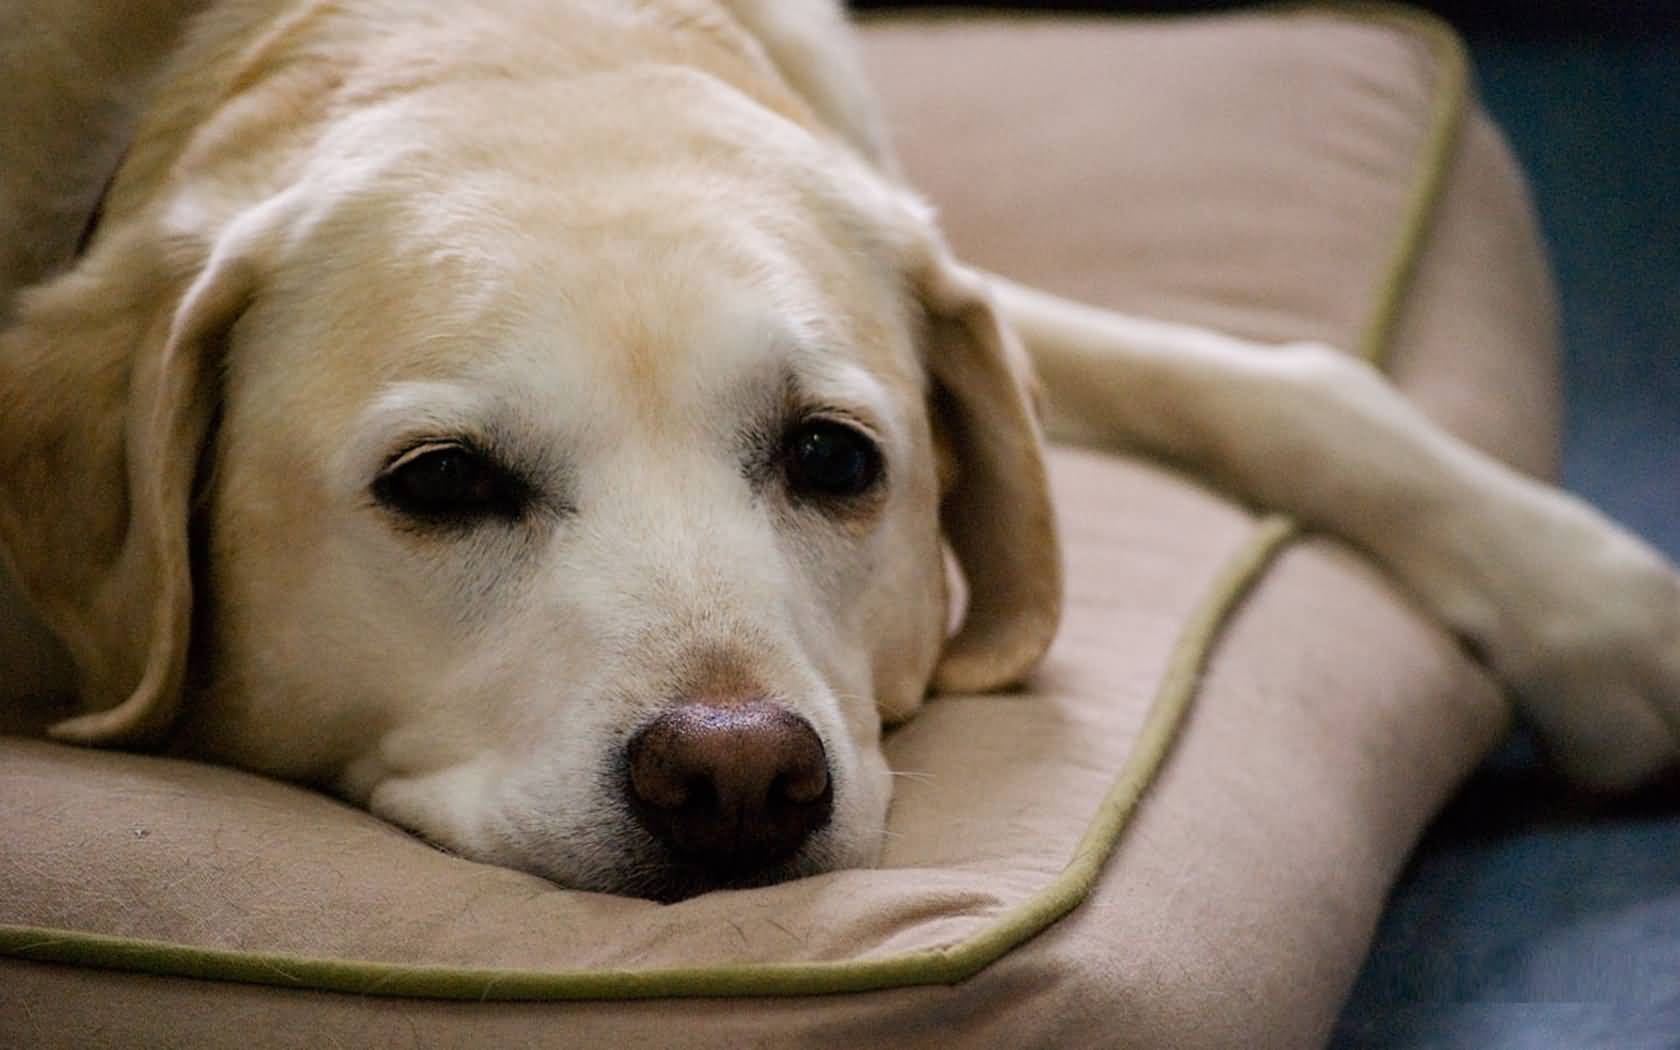 Pure White Sad Labrador Retriever Dog